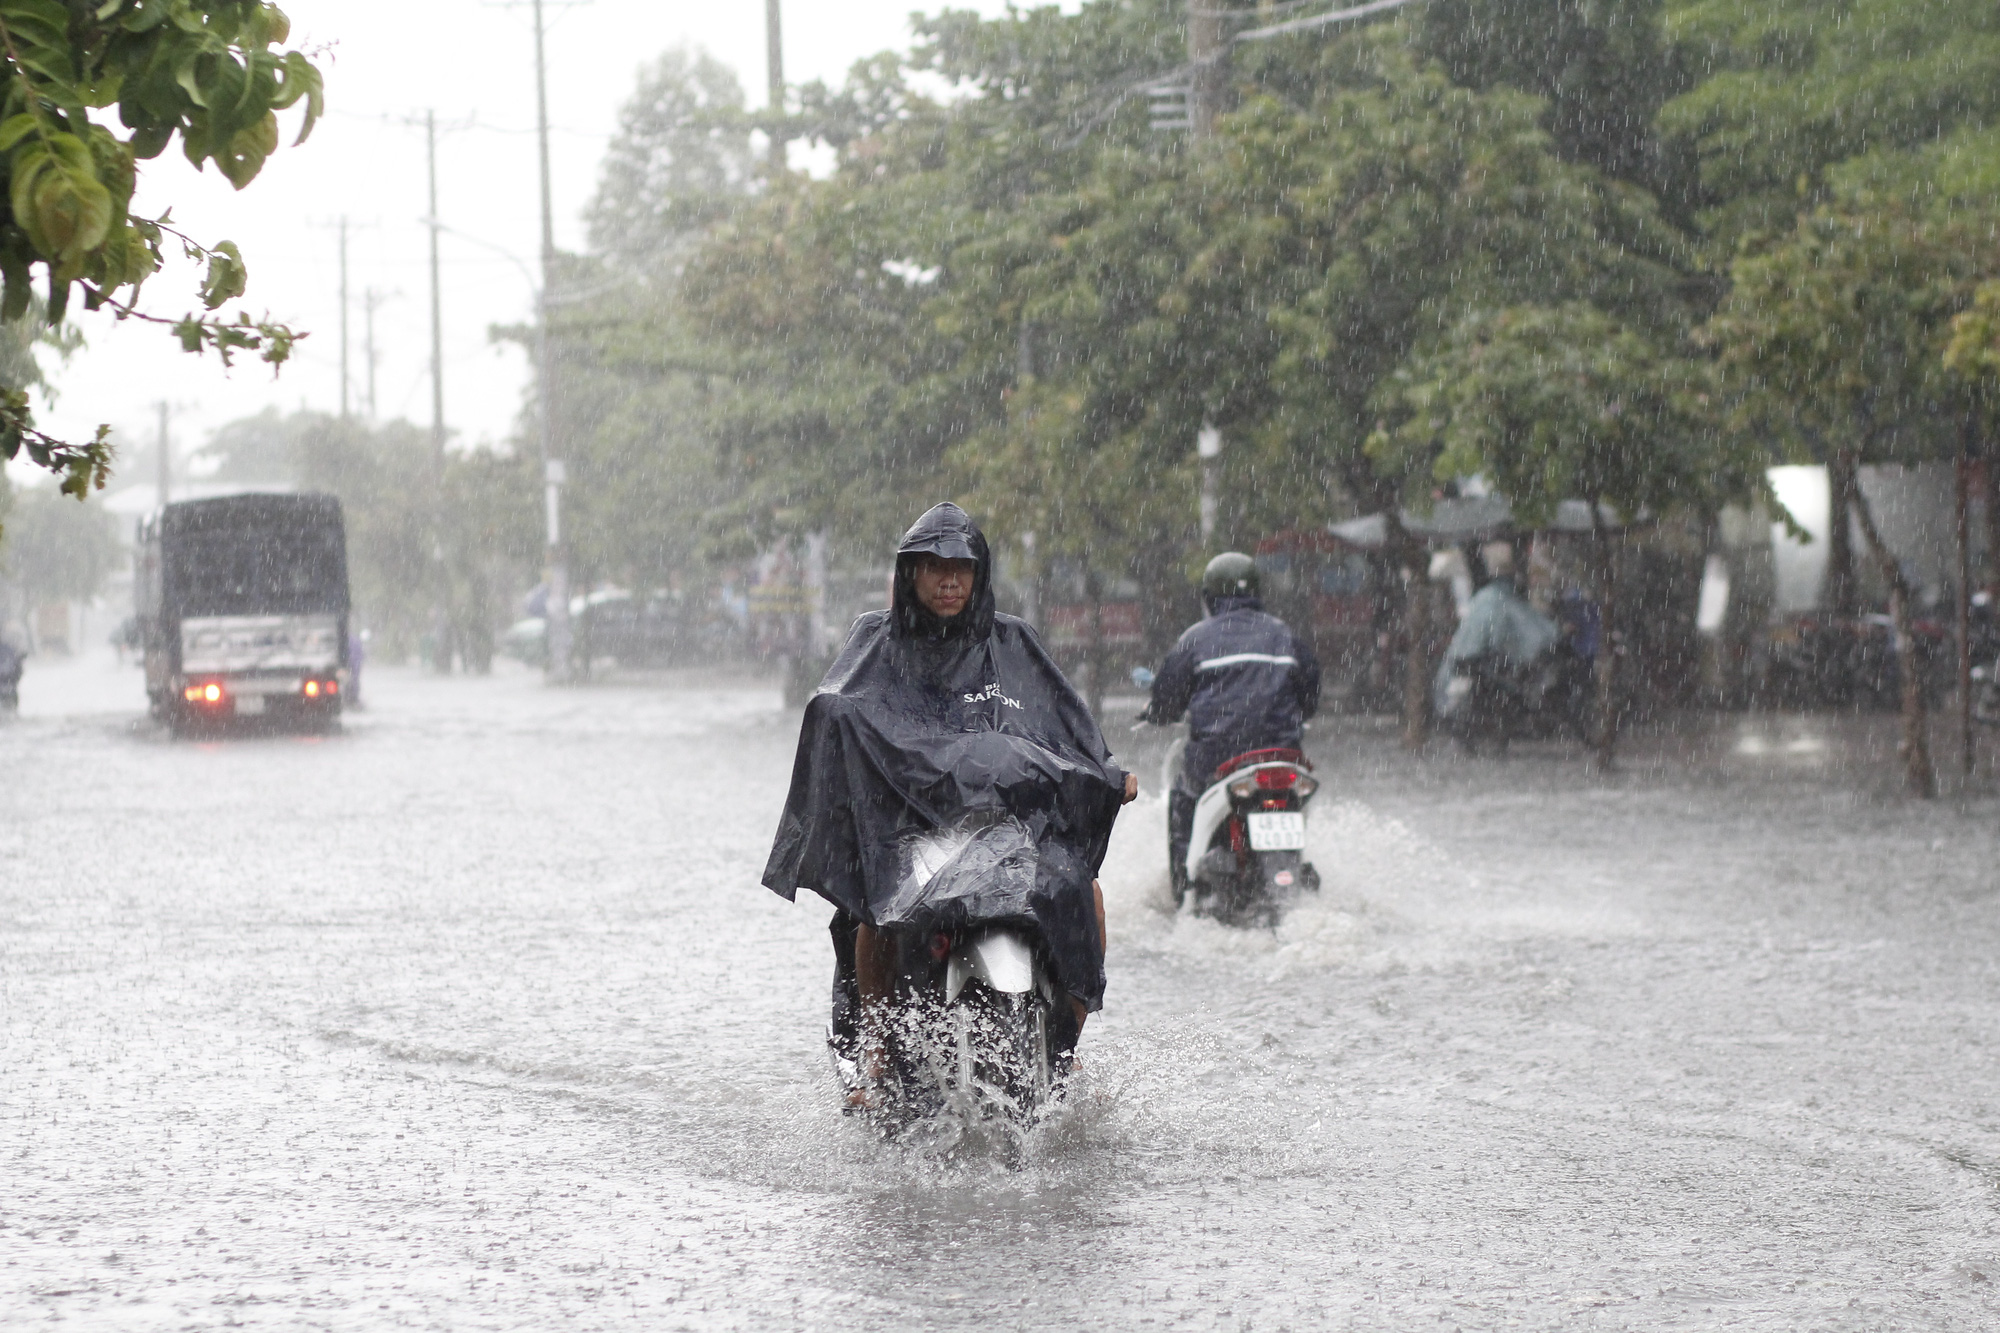 Increased rain expected across Vietnam this month